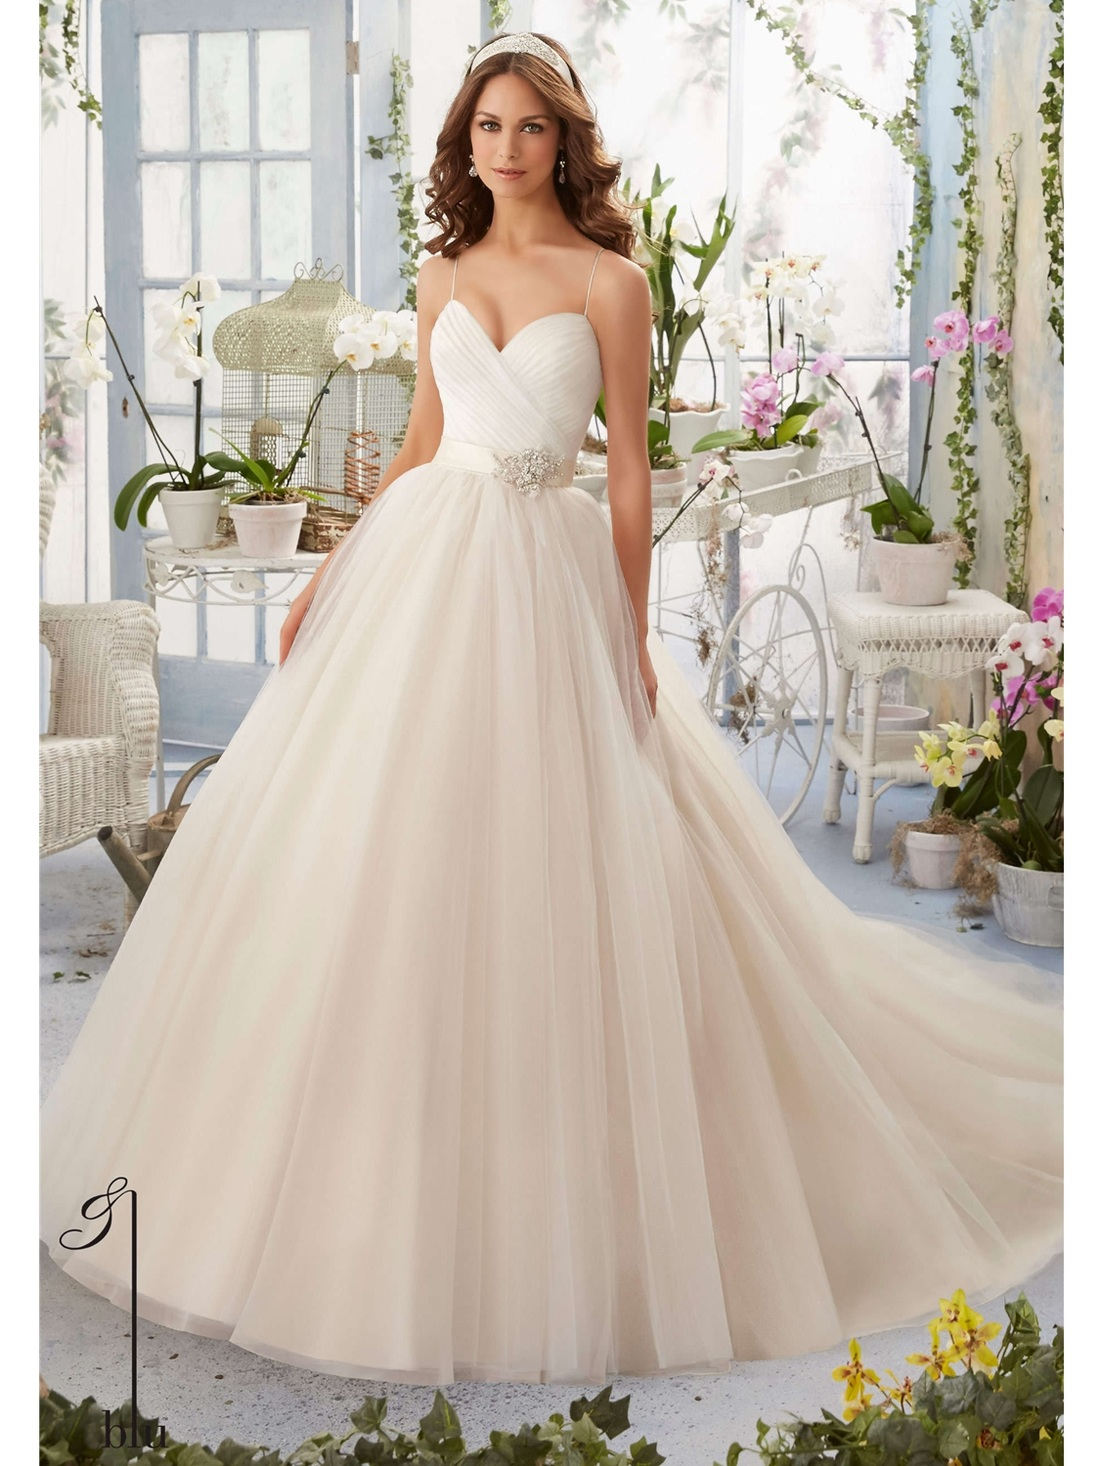 Get A Designer Wedding Dress Look For Less